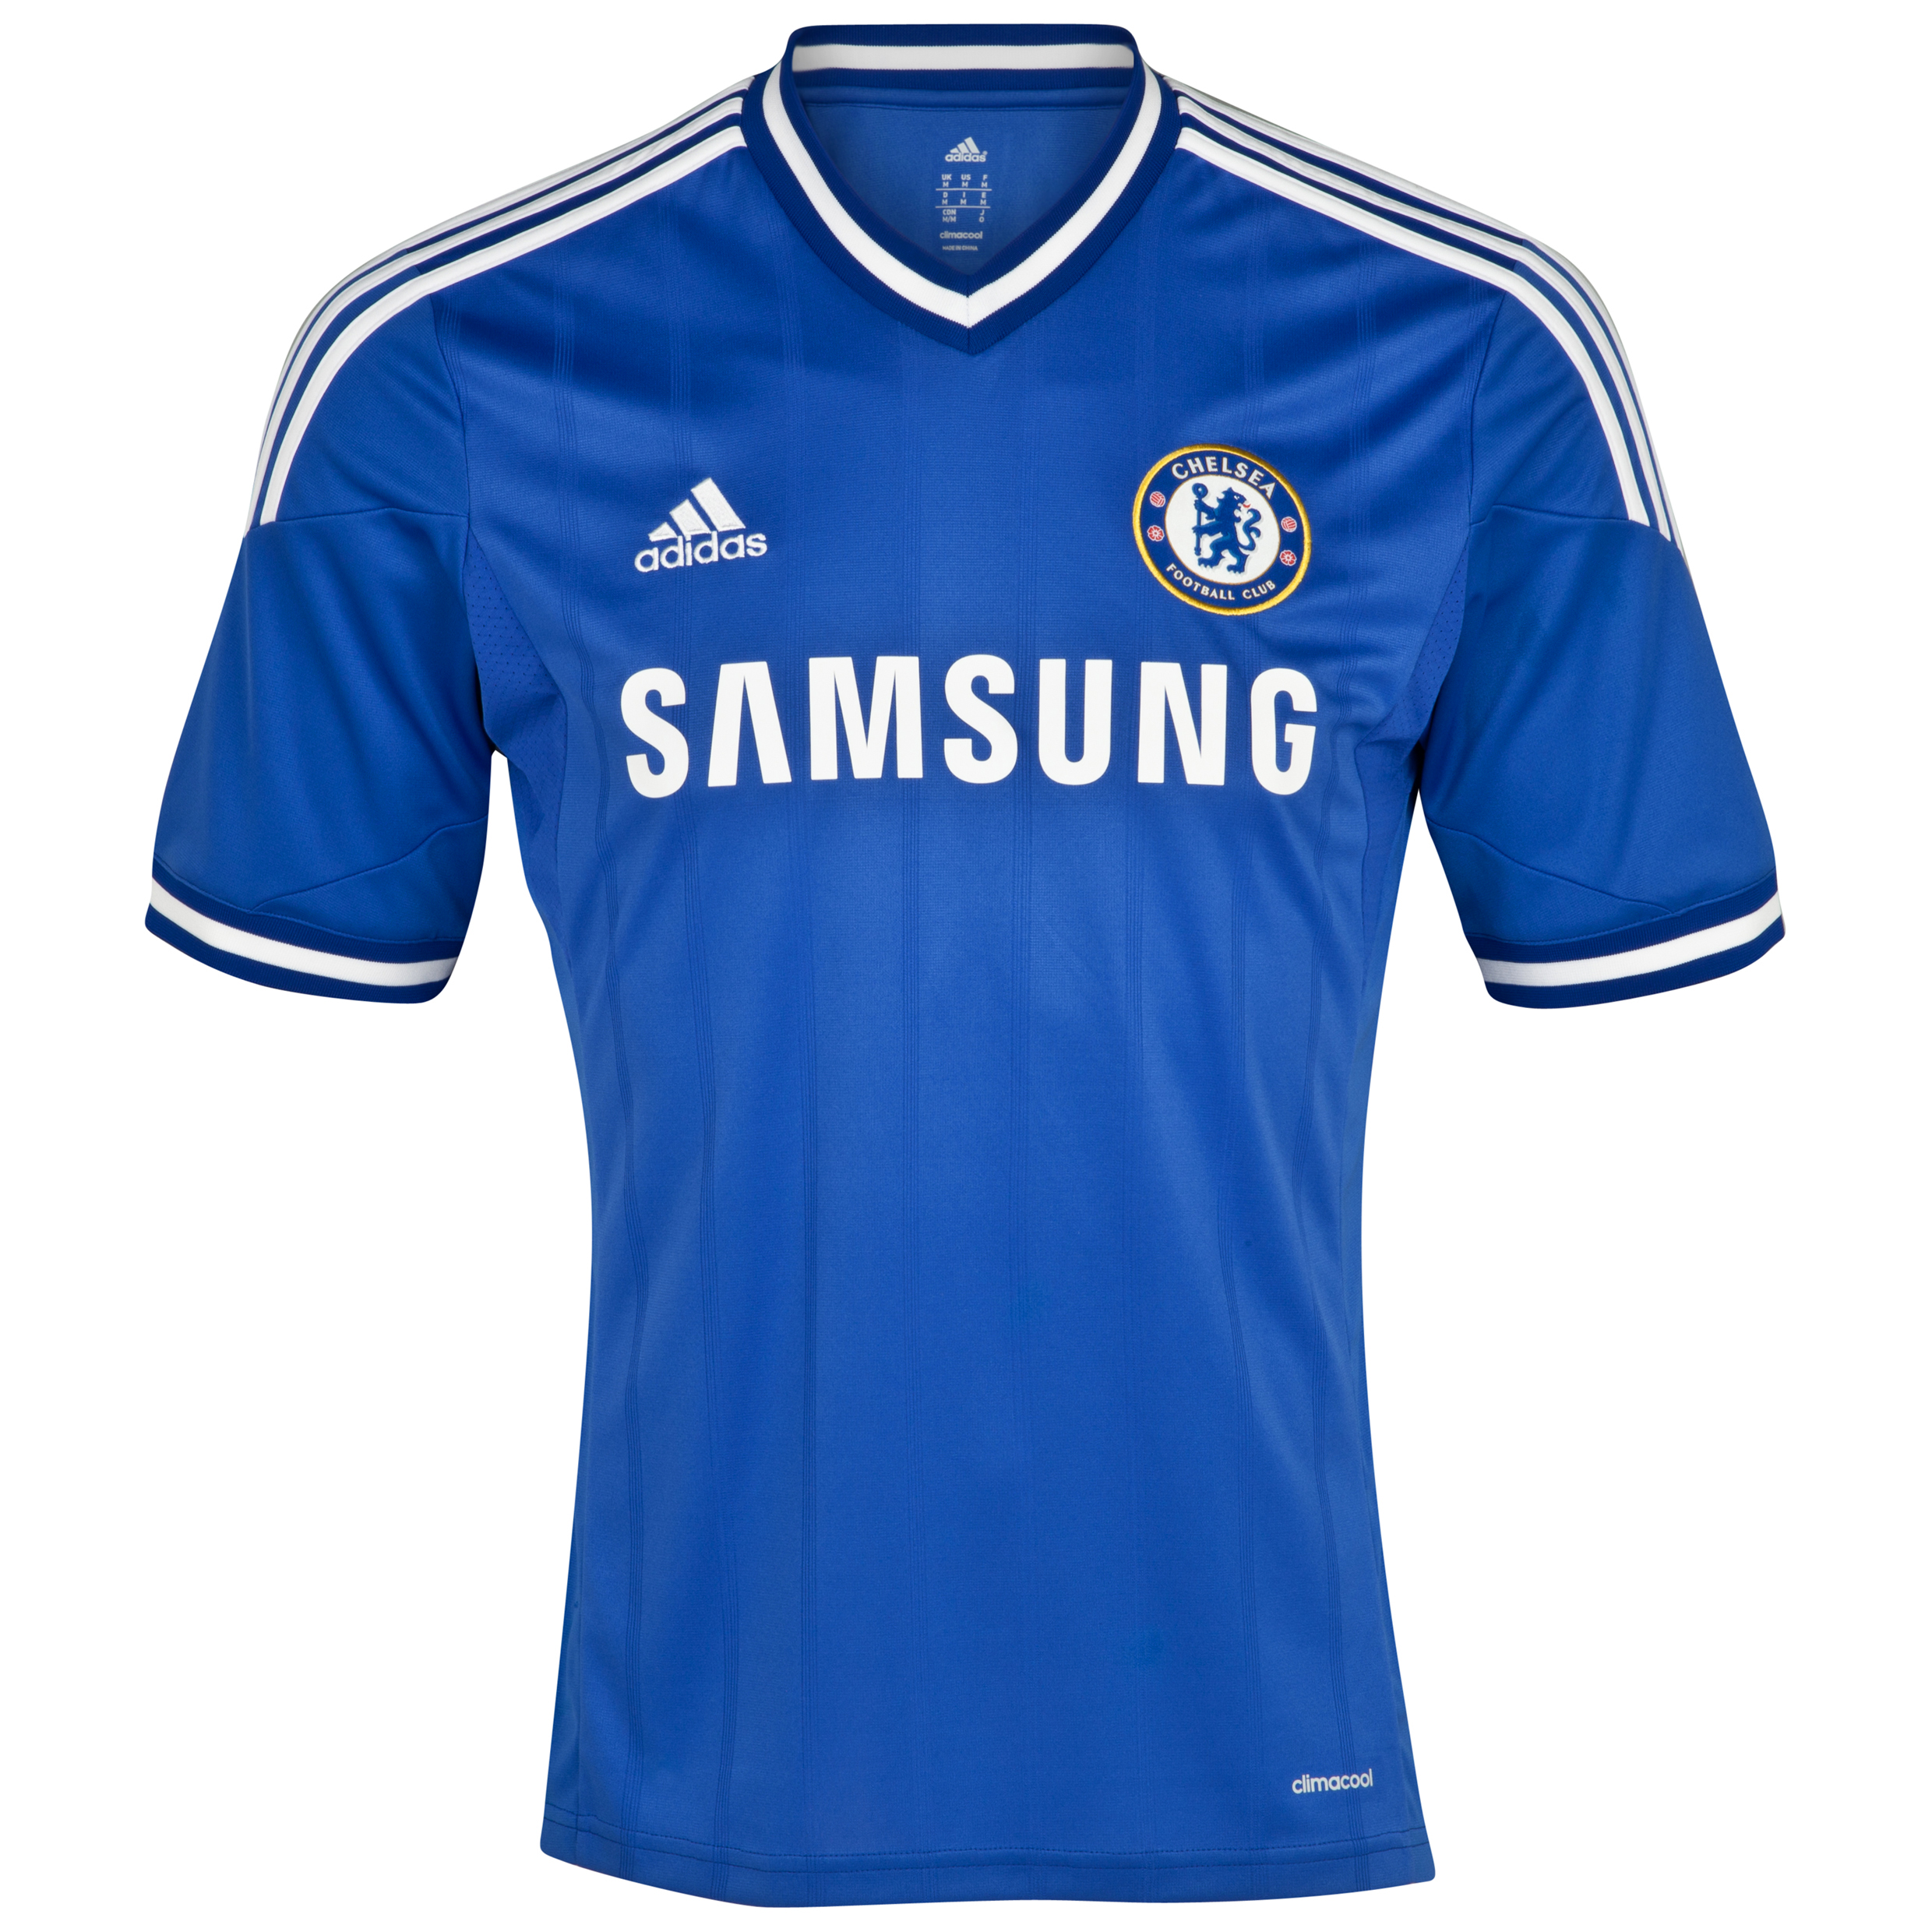 Buy Chelsea Home Kit 2013/14